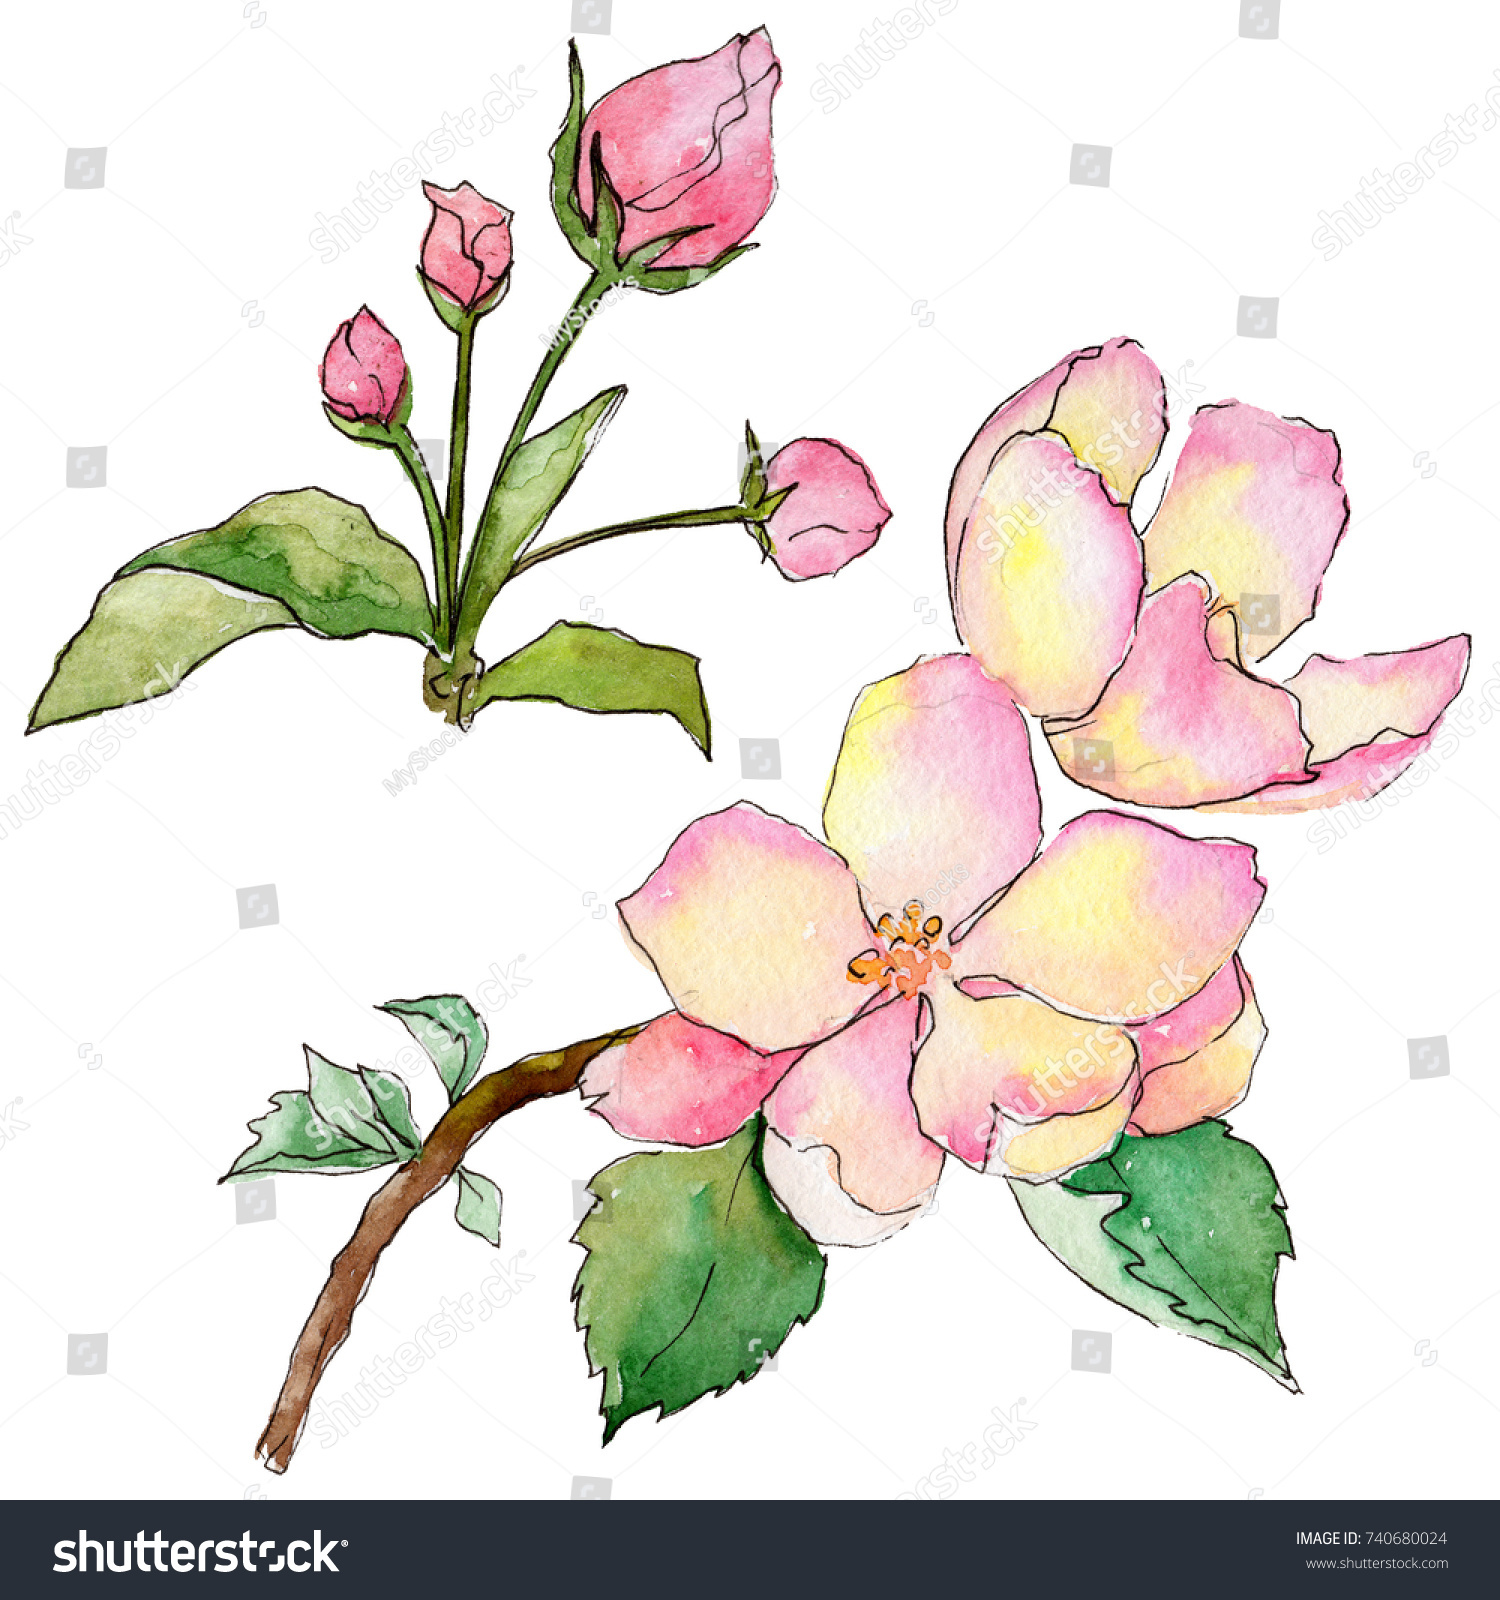 Wildflower Flowers Of Apple Flower In A Watercolor Style Isolated